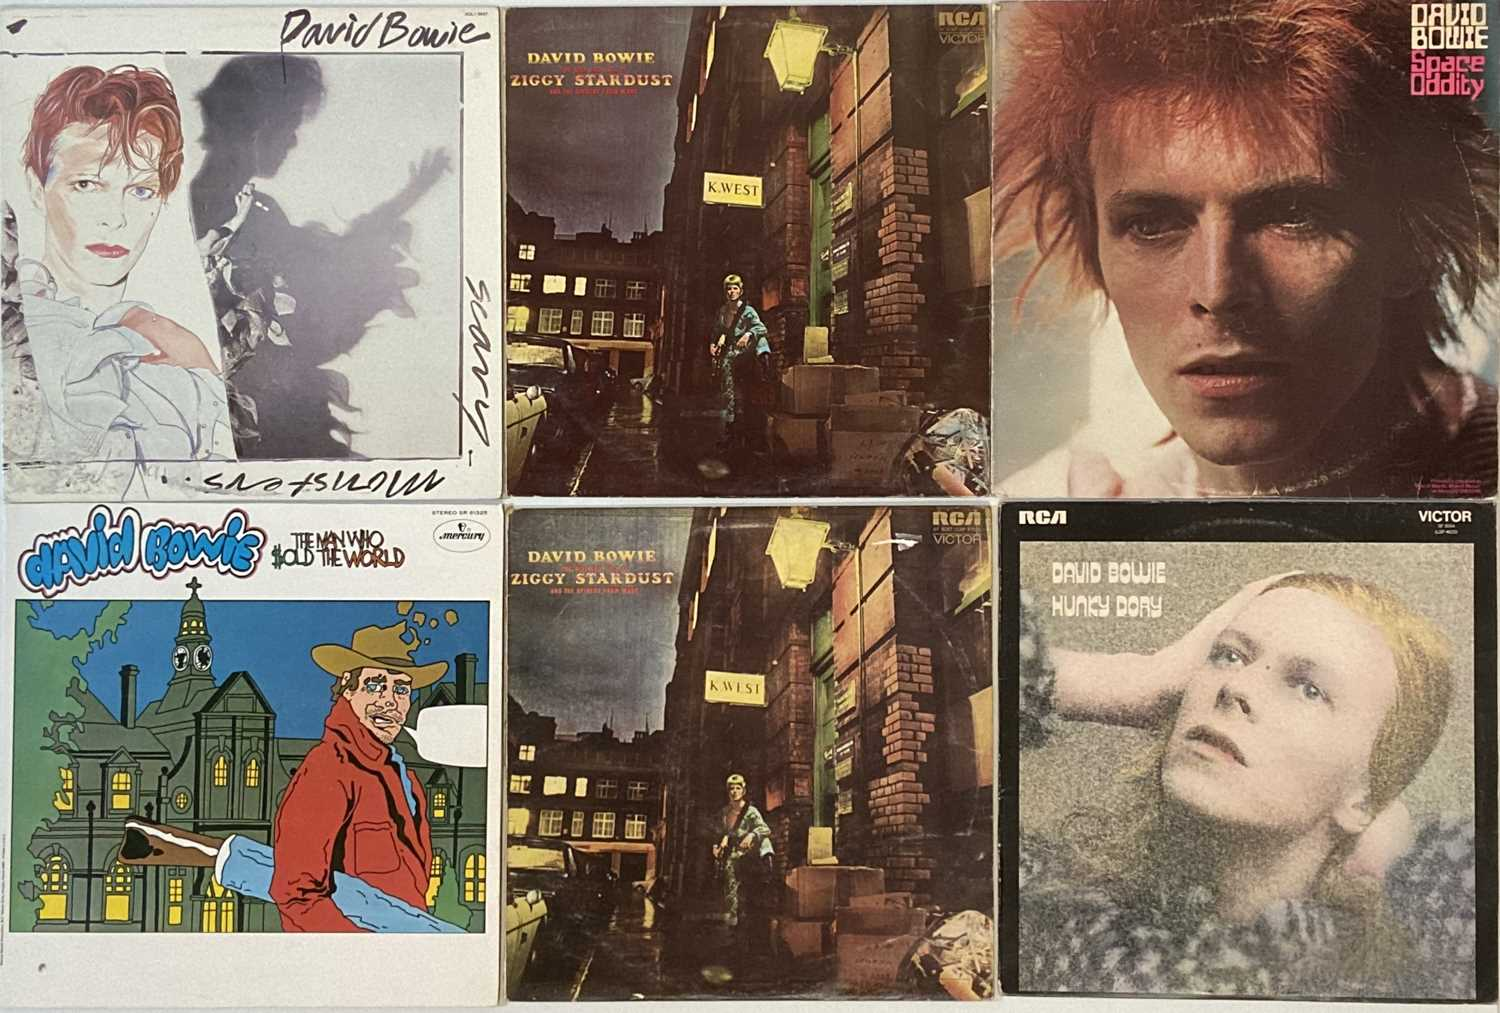 DAVID BOWIE - NORTH AMERICAN/ROW/PICTURE DISCS - LPs